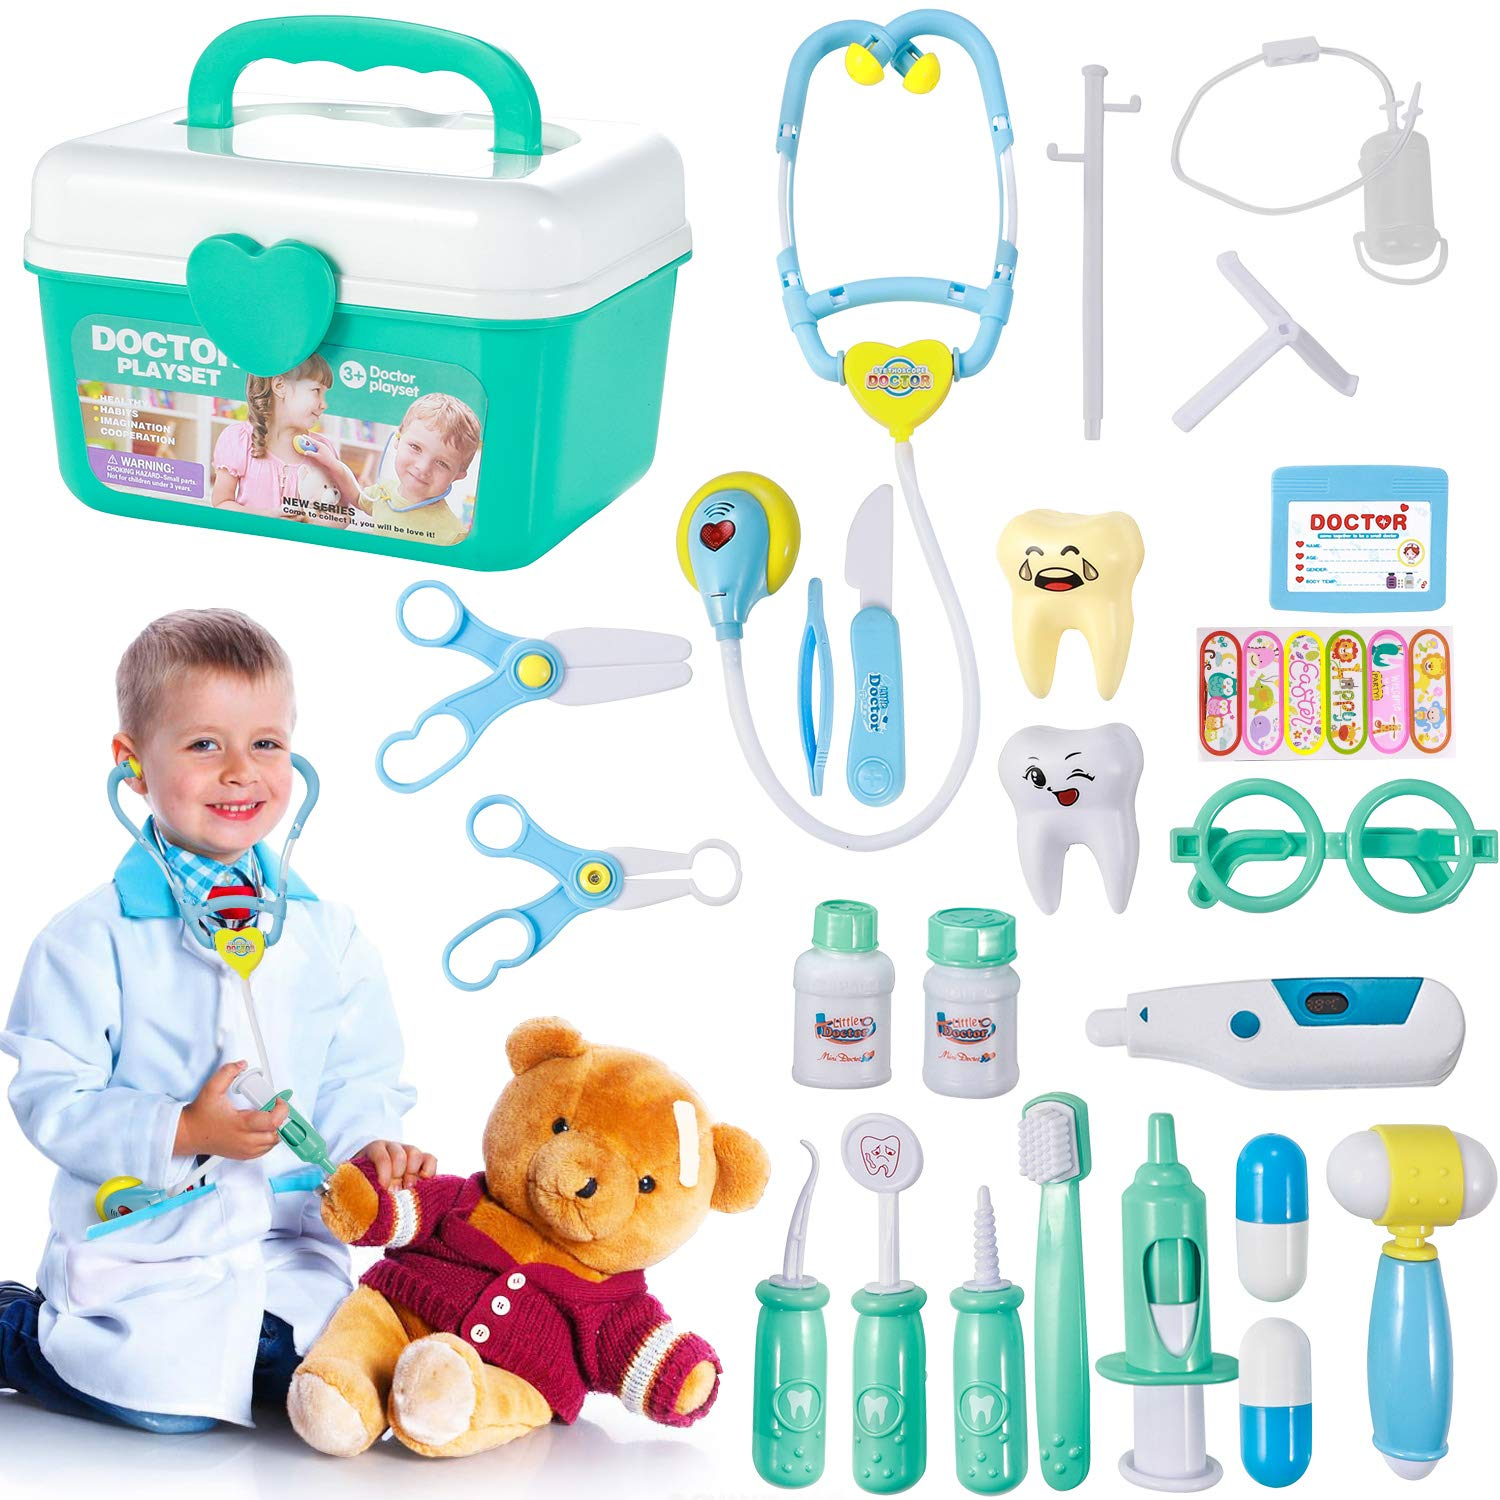 Kids Doctor Set, GEYIIE 23 Piece Medical kit Pretend Play Toys with Electronic Stethoscope Dentist Educational Toy Playset for Boys Girls by Geyiie